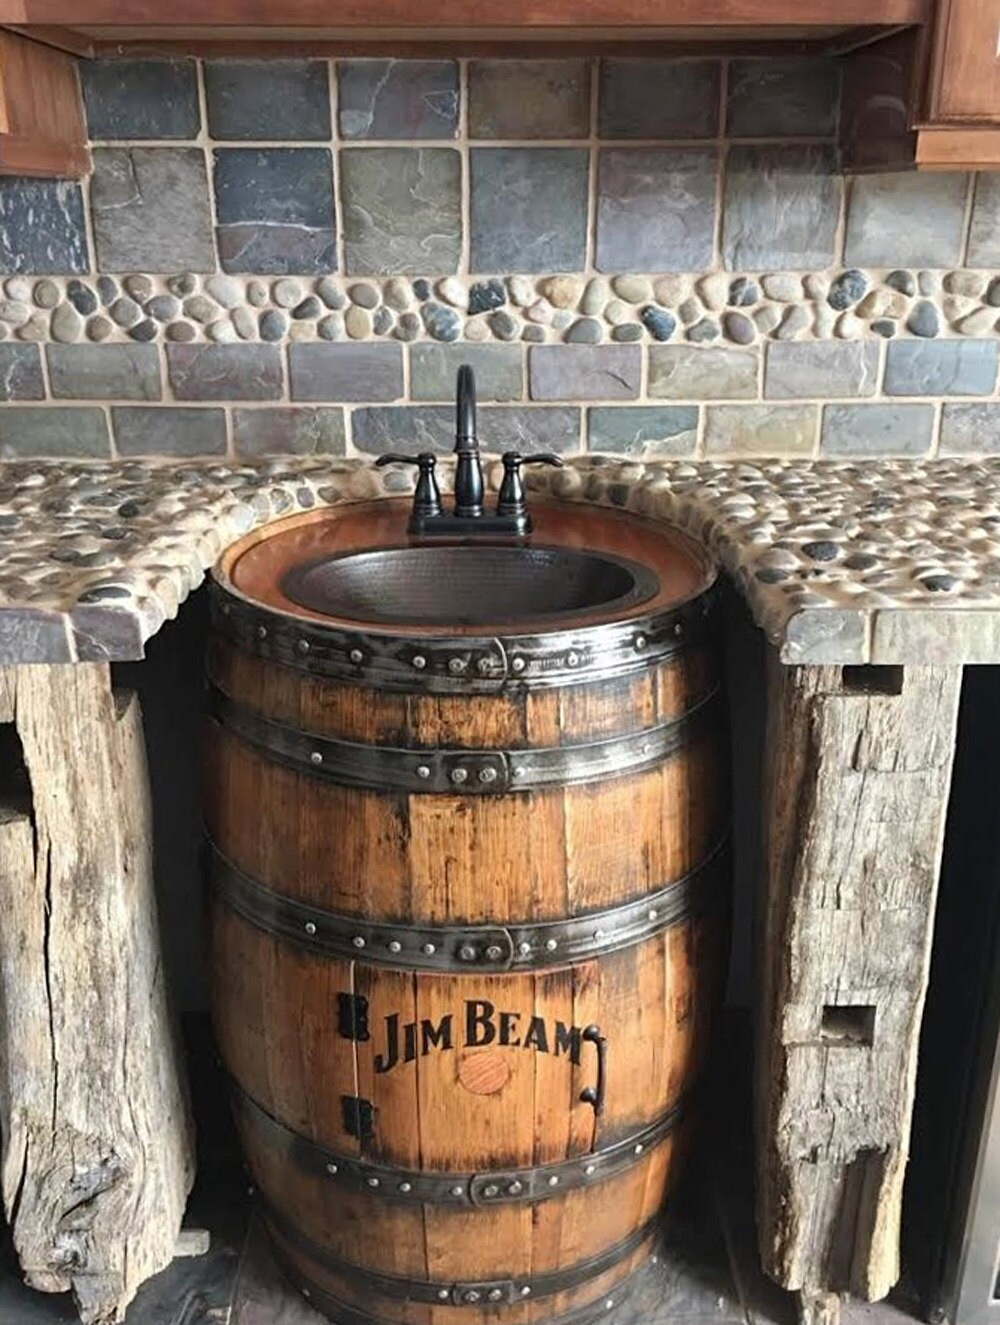 Whiskey Barrel Sink Hammered Copper Rustic Antique Bathroom